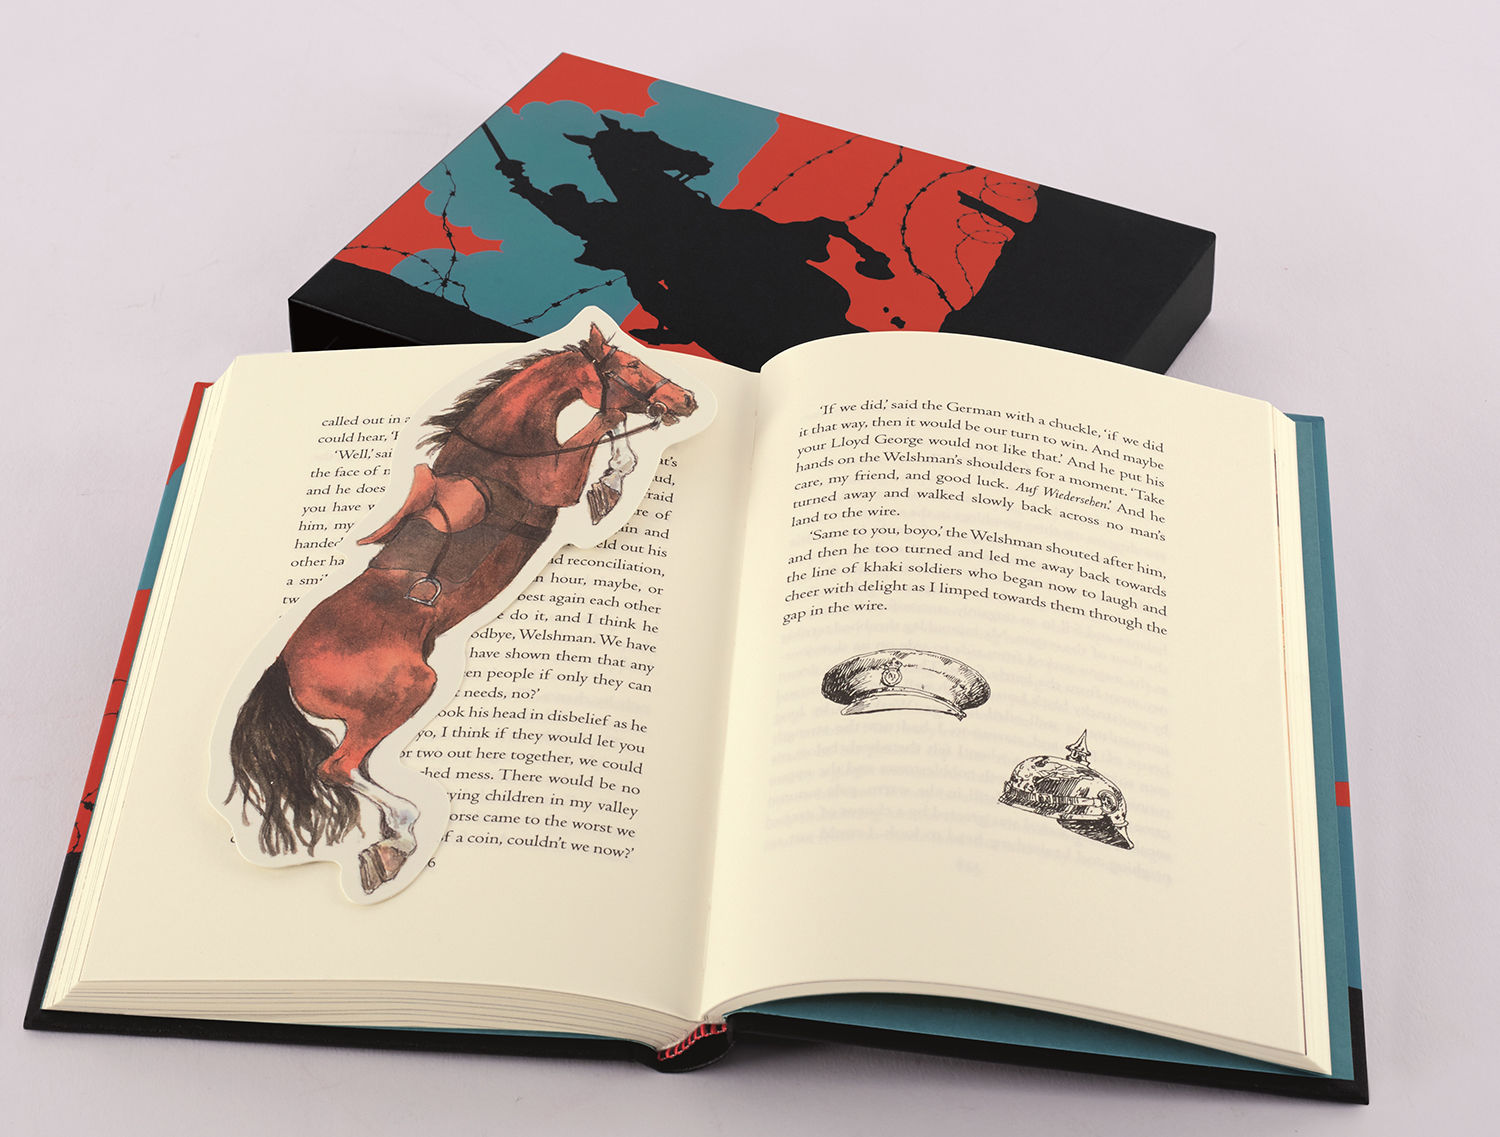 How The Folio Society designs incredibly beautiful book